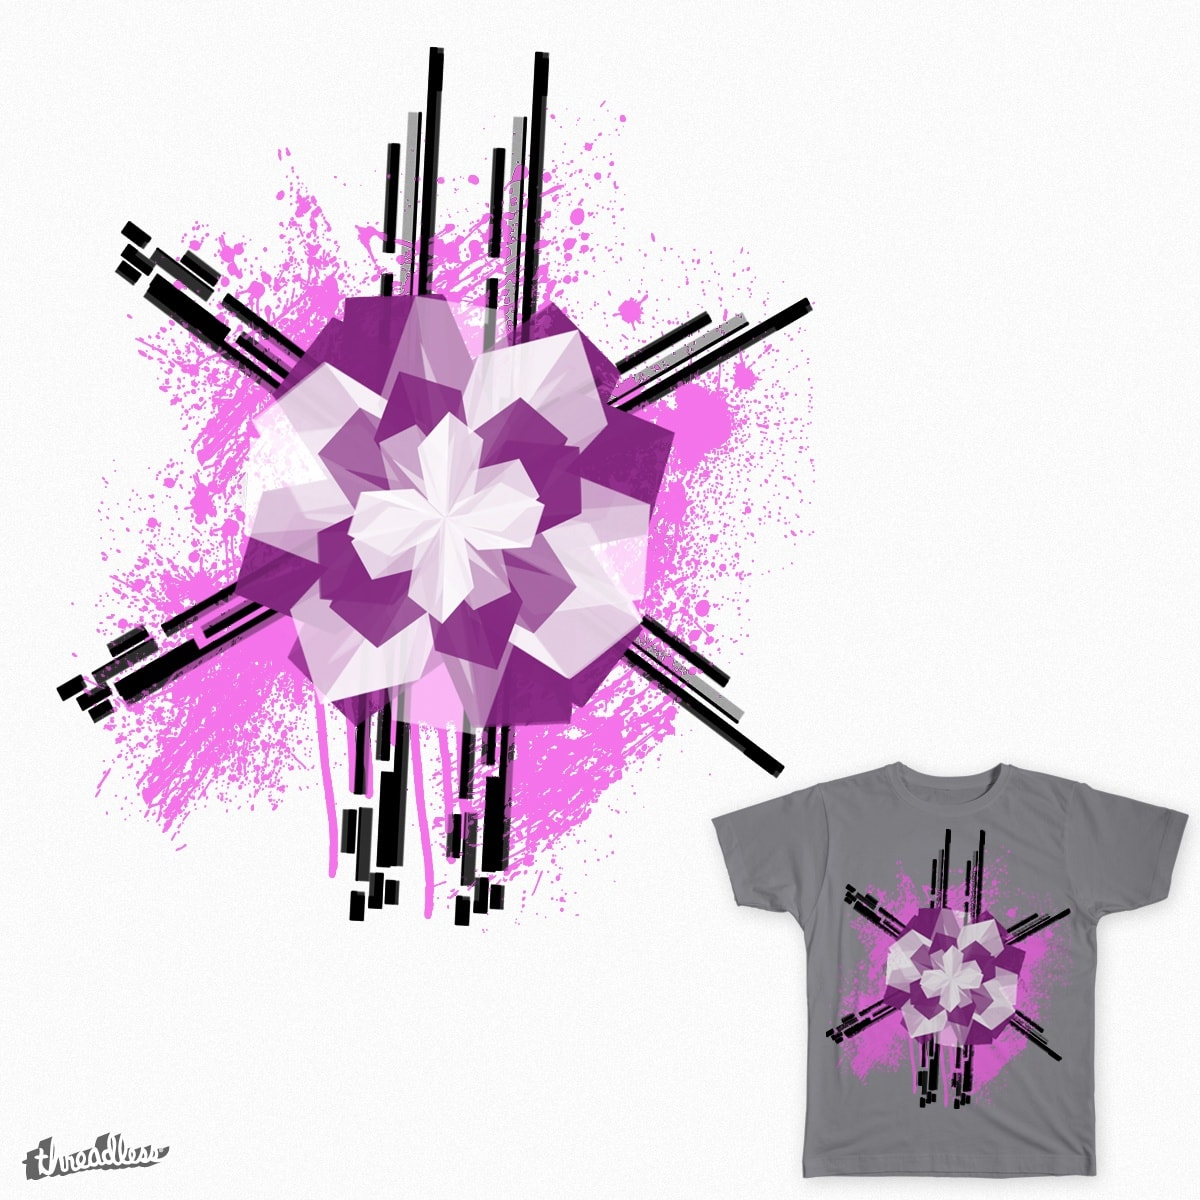 Paint My Blossom by aaron_galaxy on Threadless